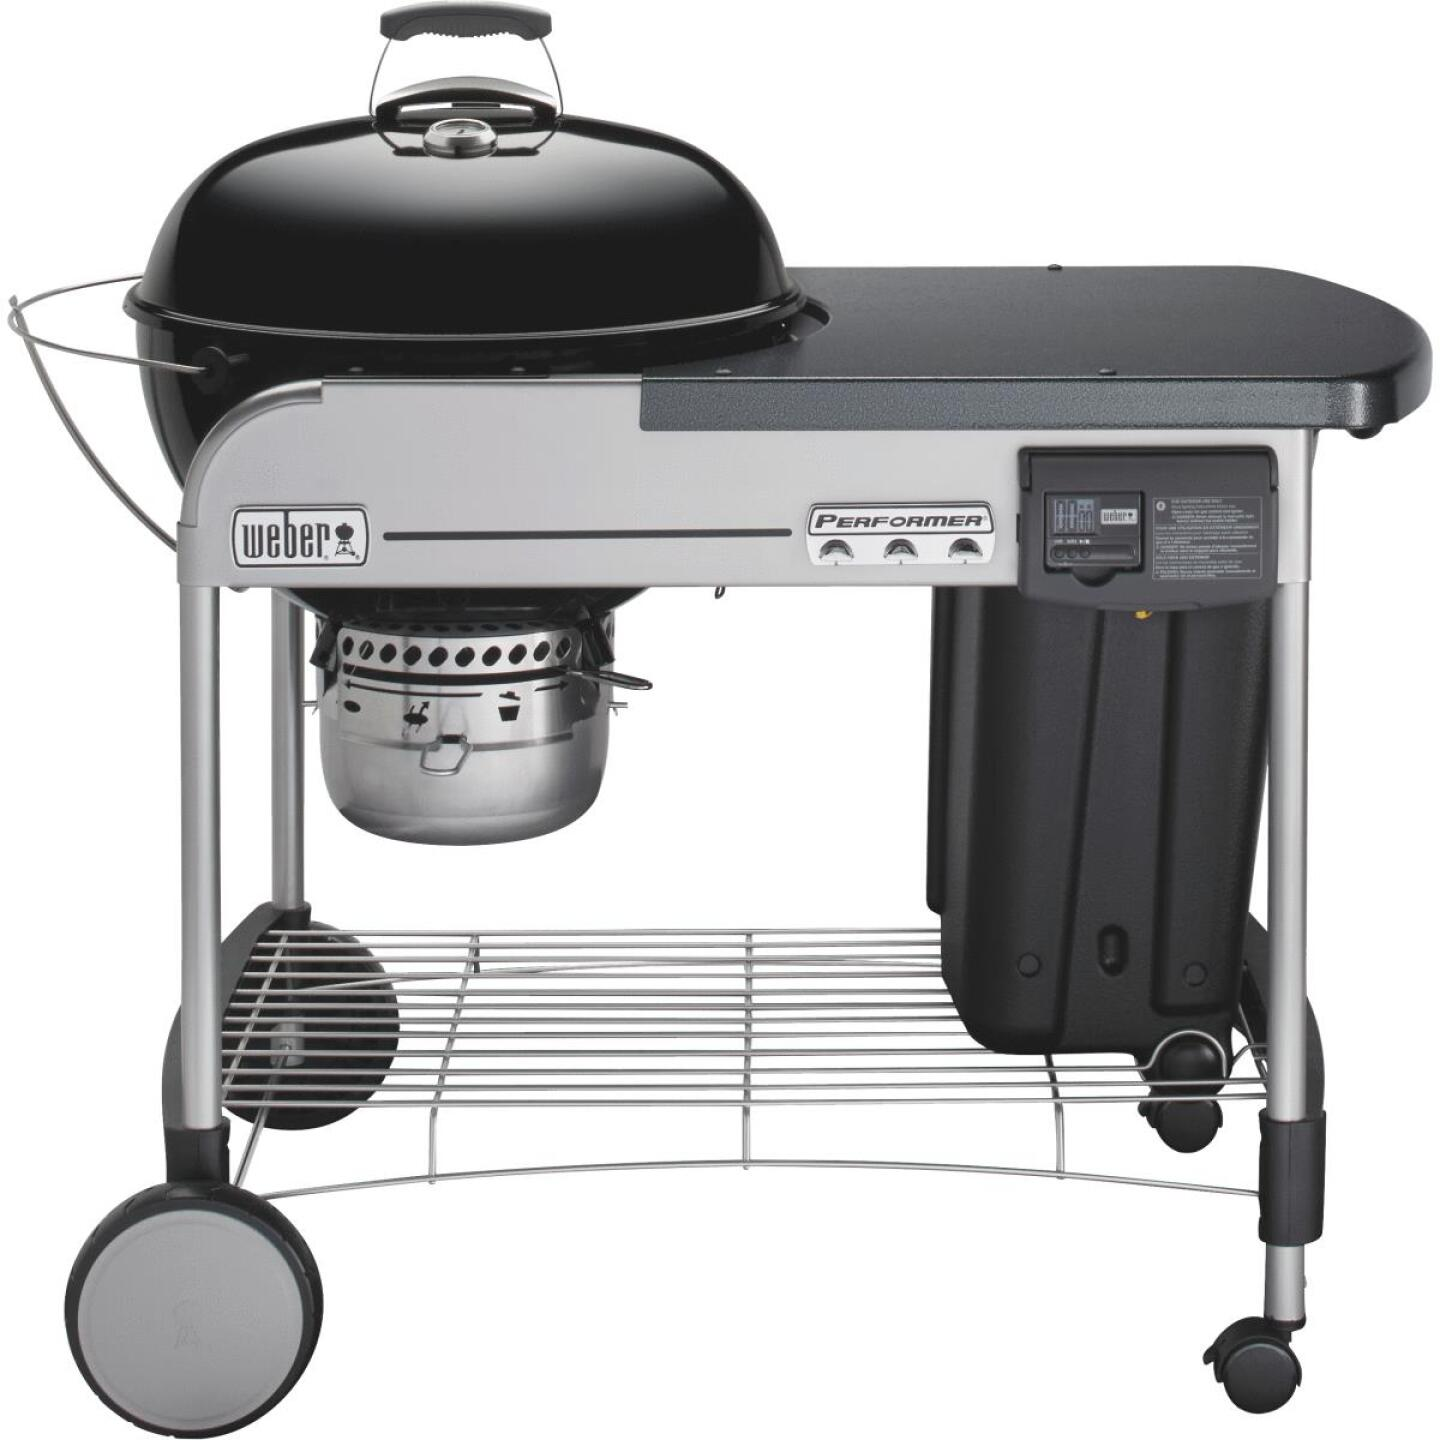 Weber Performer Deluxe 22 In. Black Charcoal Grill Image 5